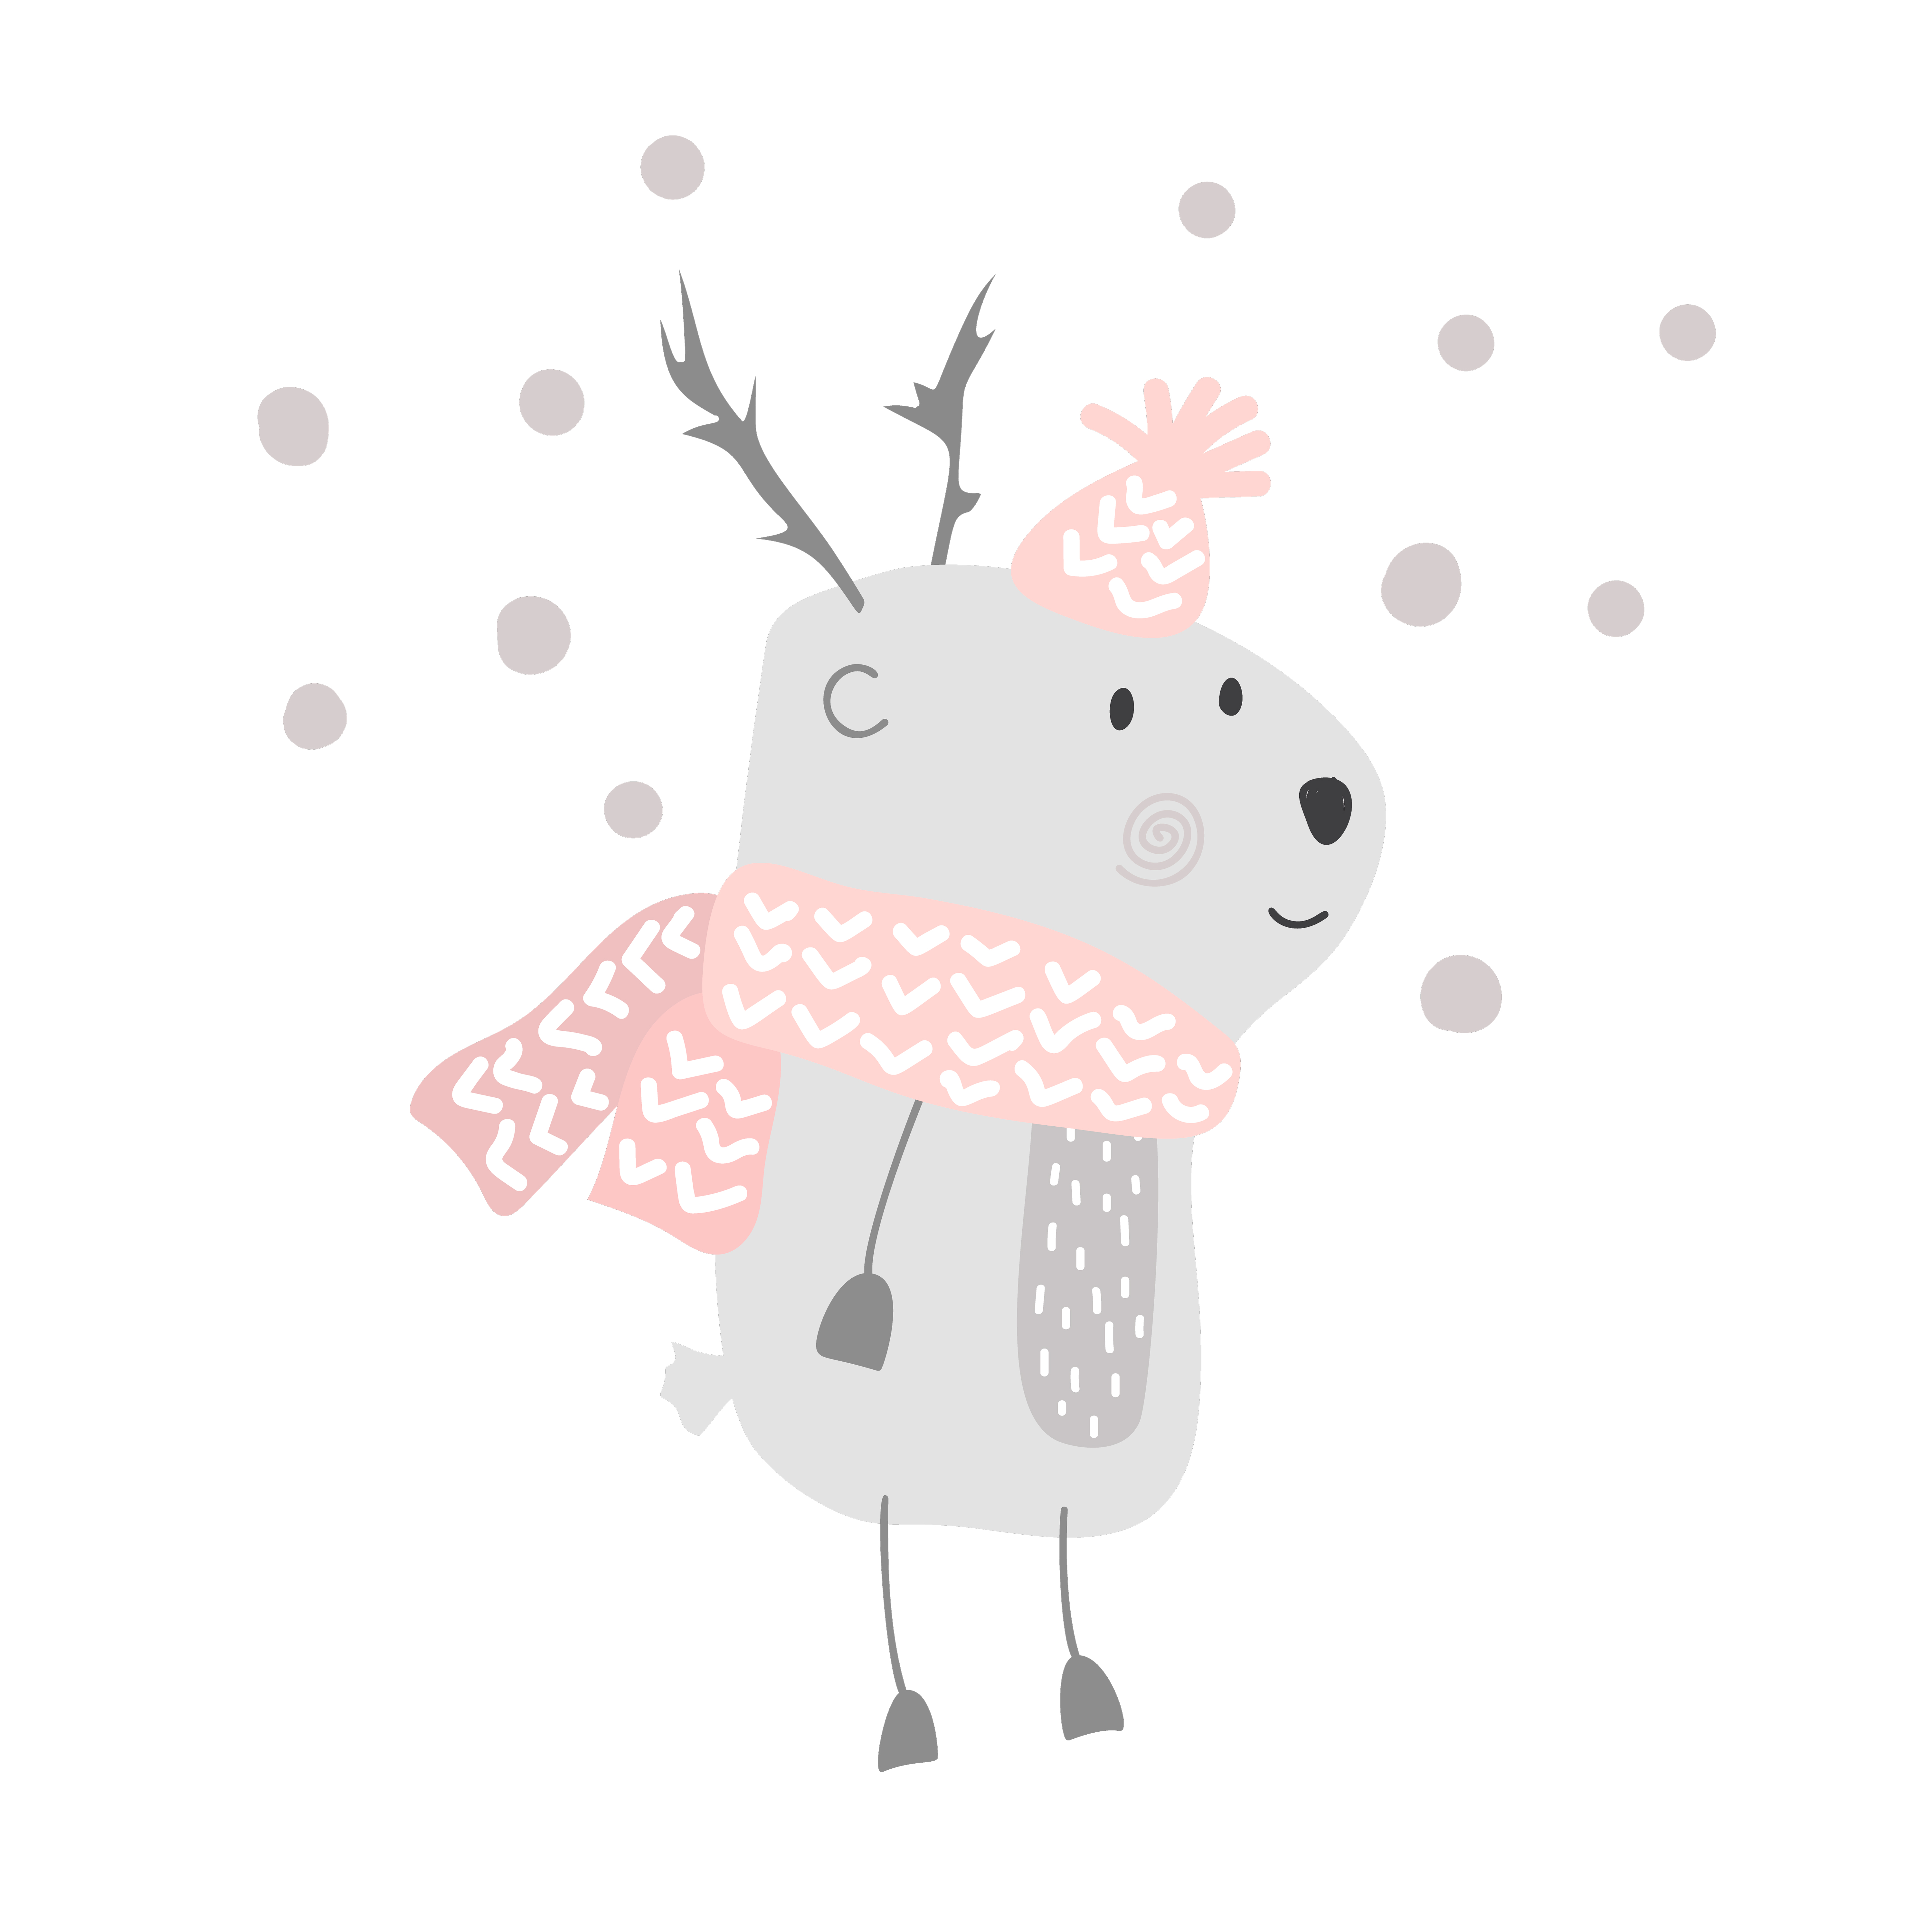 Christmas Vector Cute Cartoon Deer In Hat And Scarf Illustration Design Bambi Animal Vector Merry Xmas Greeting Card Download Free Vectors Clipart Graphics Vector Art